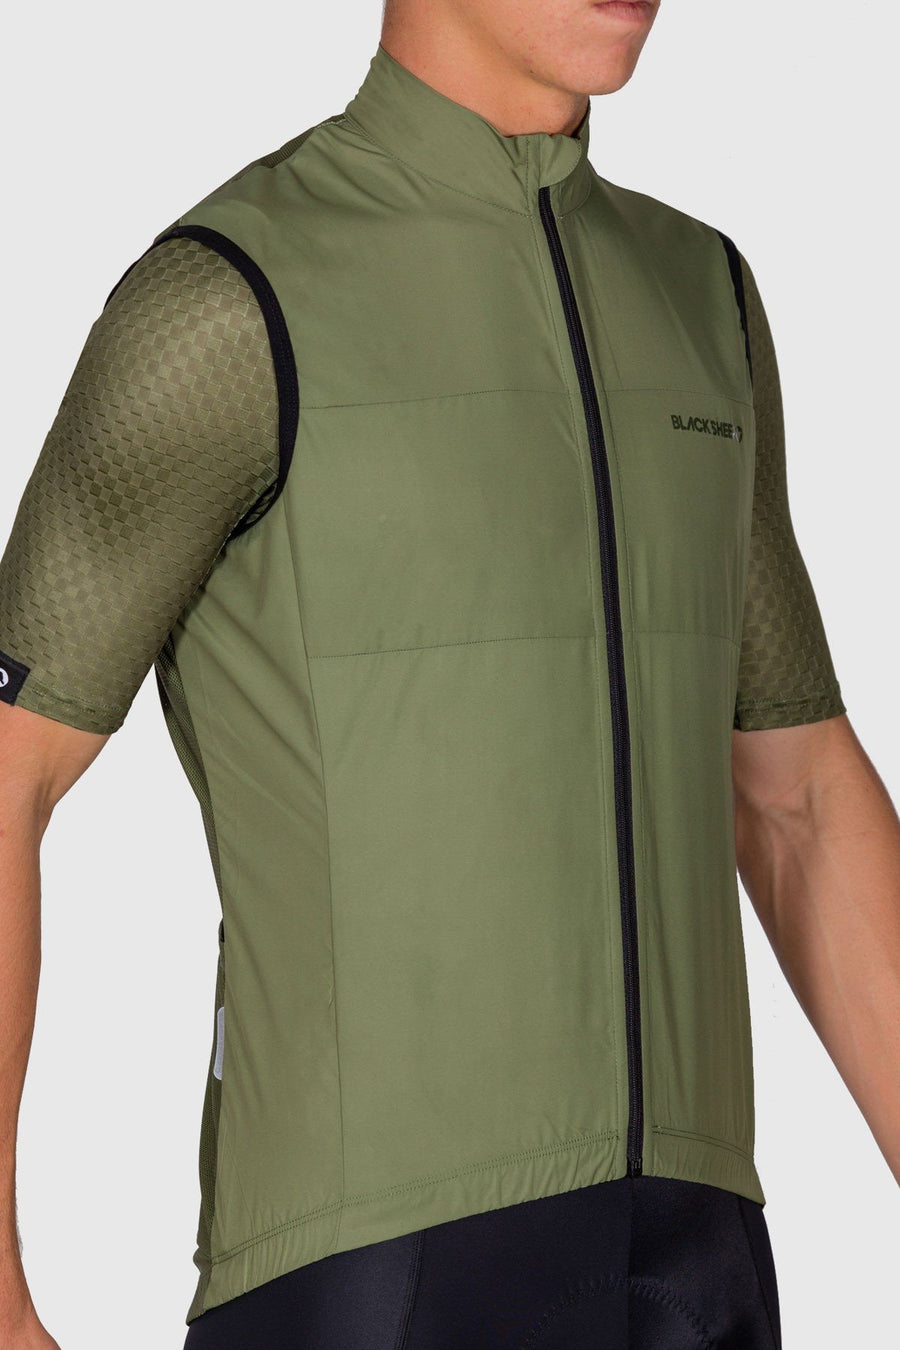 Euro Collection Men's Imperial Army Wind Vest